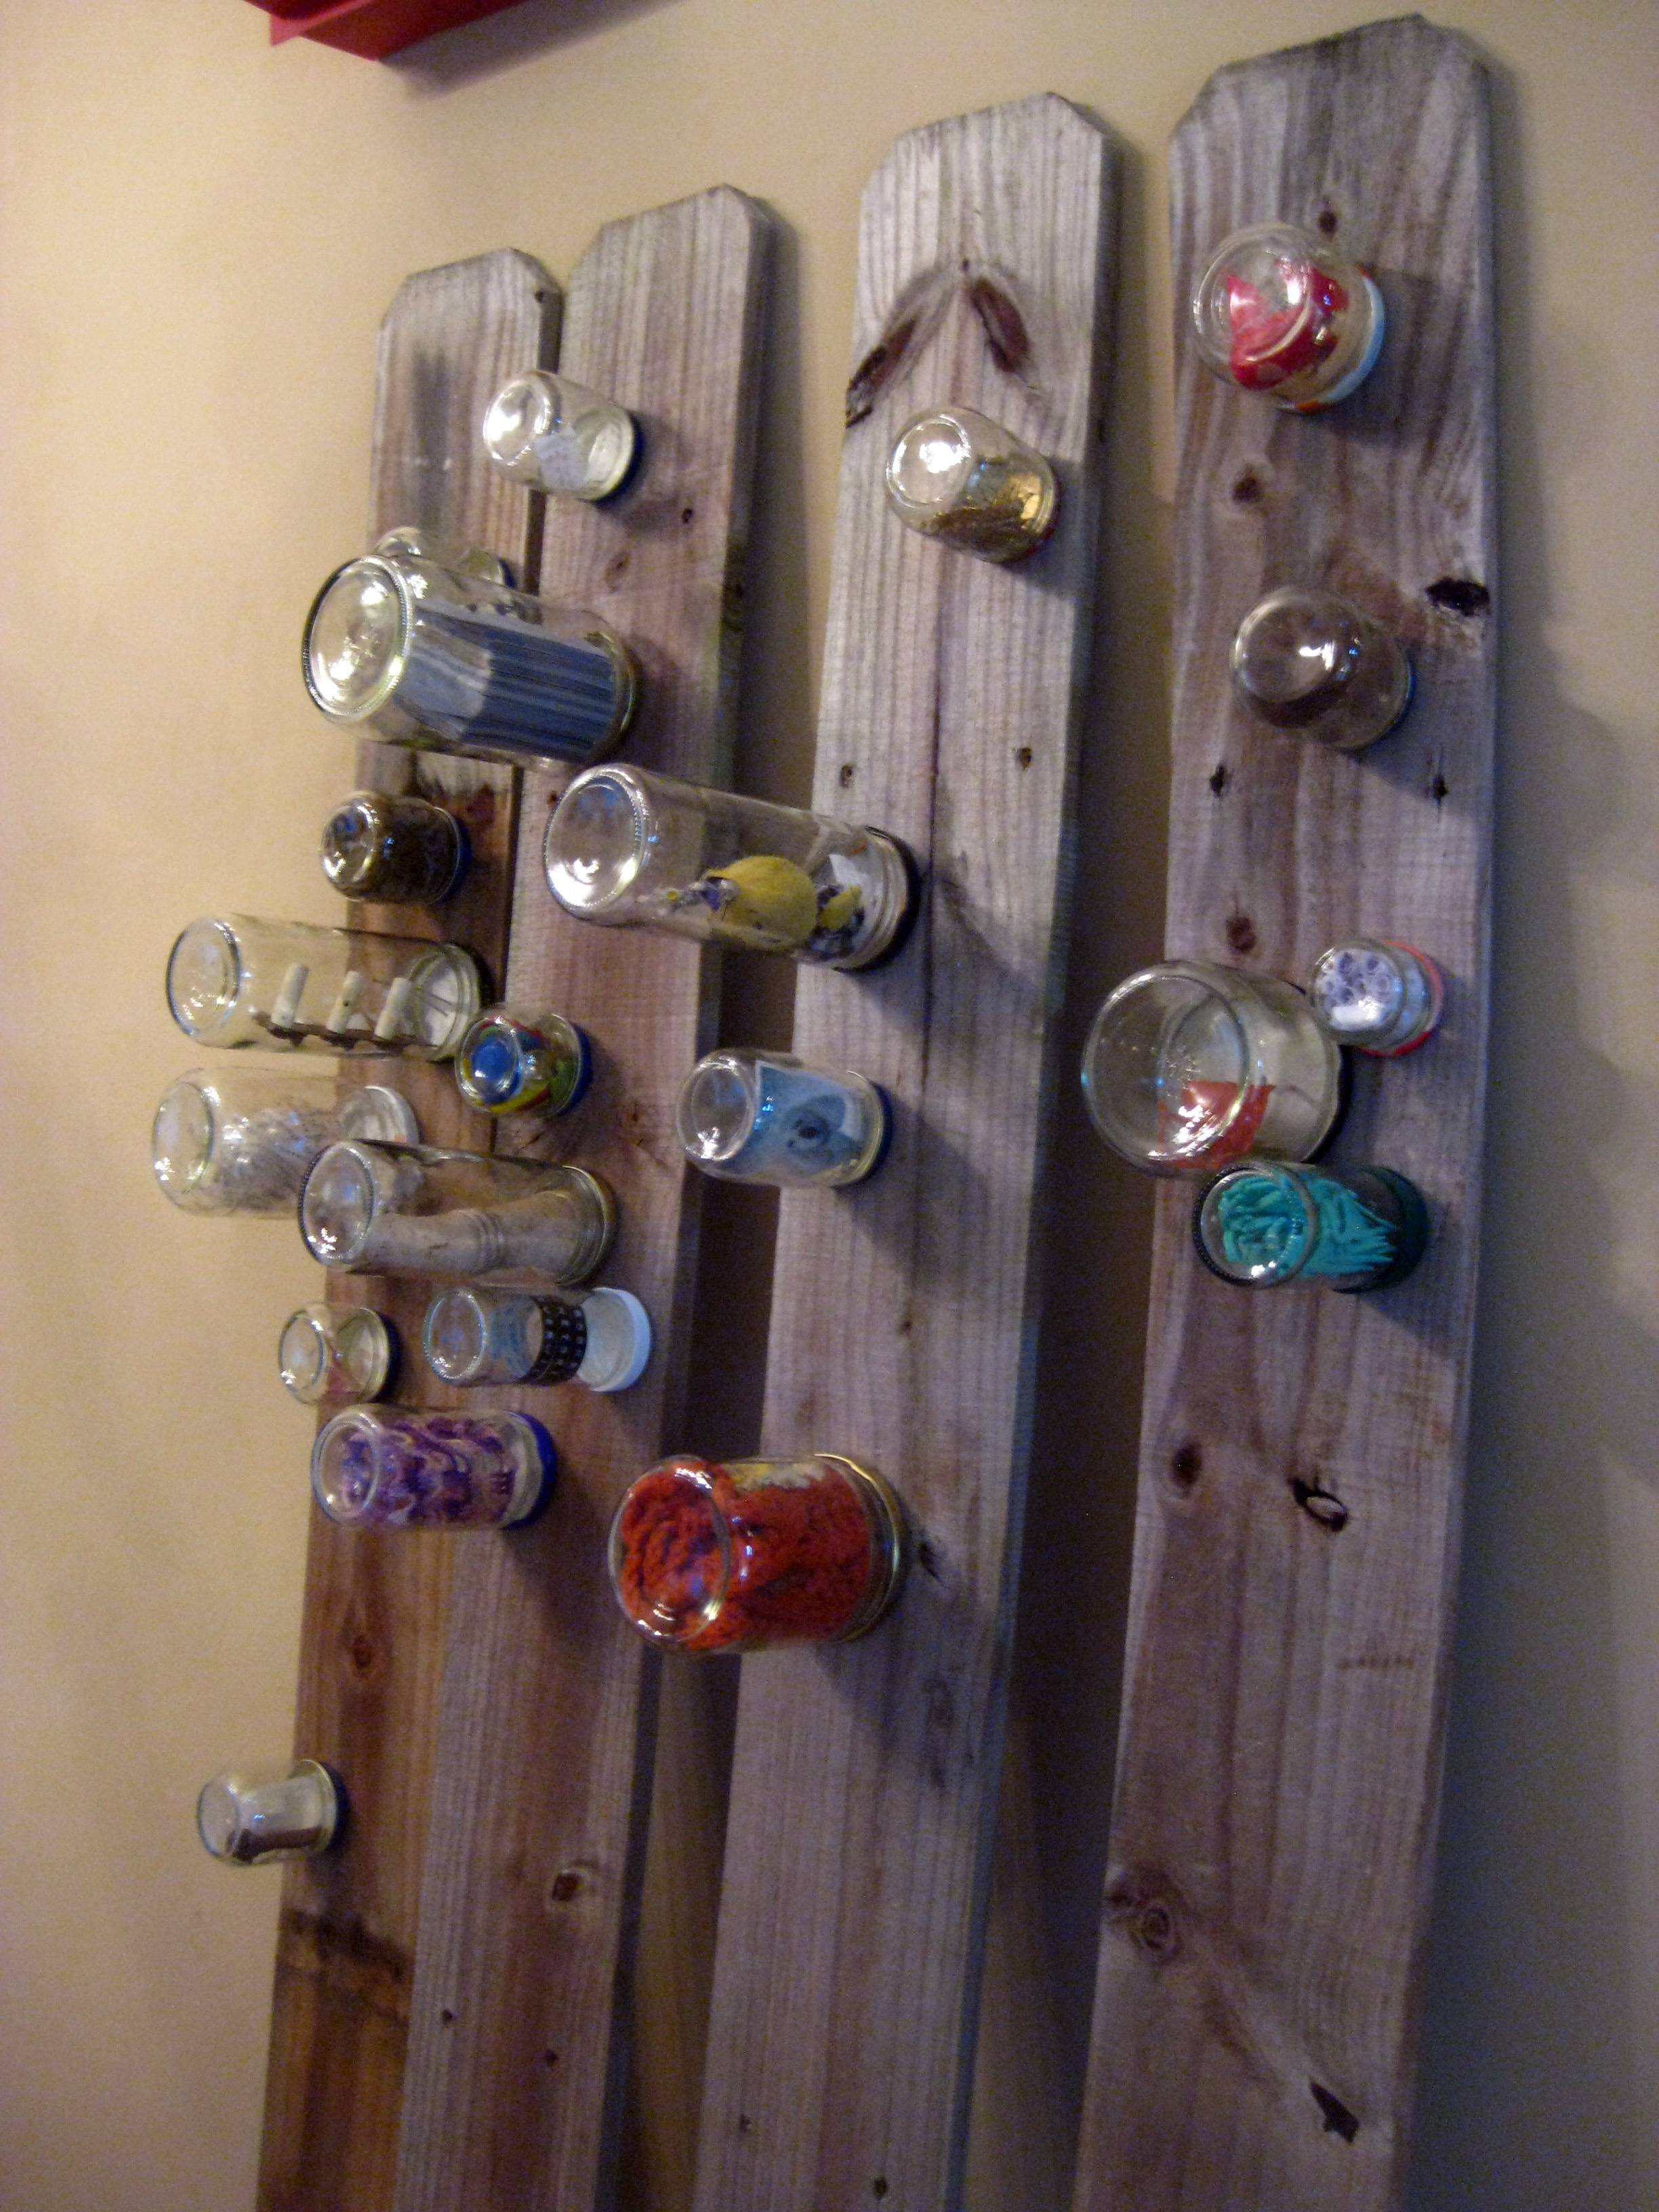 SOLD! - Found, Kept. Kept objects, found wood, jars. 6' x 6